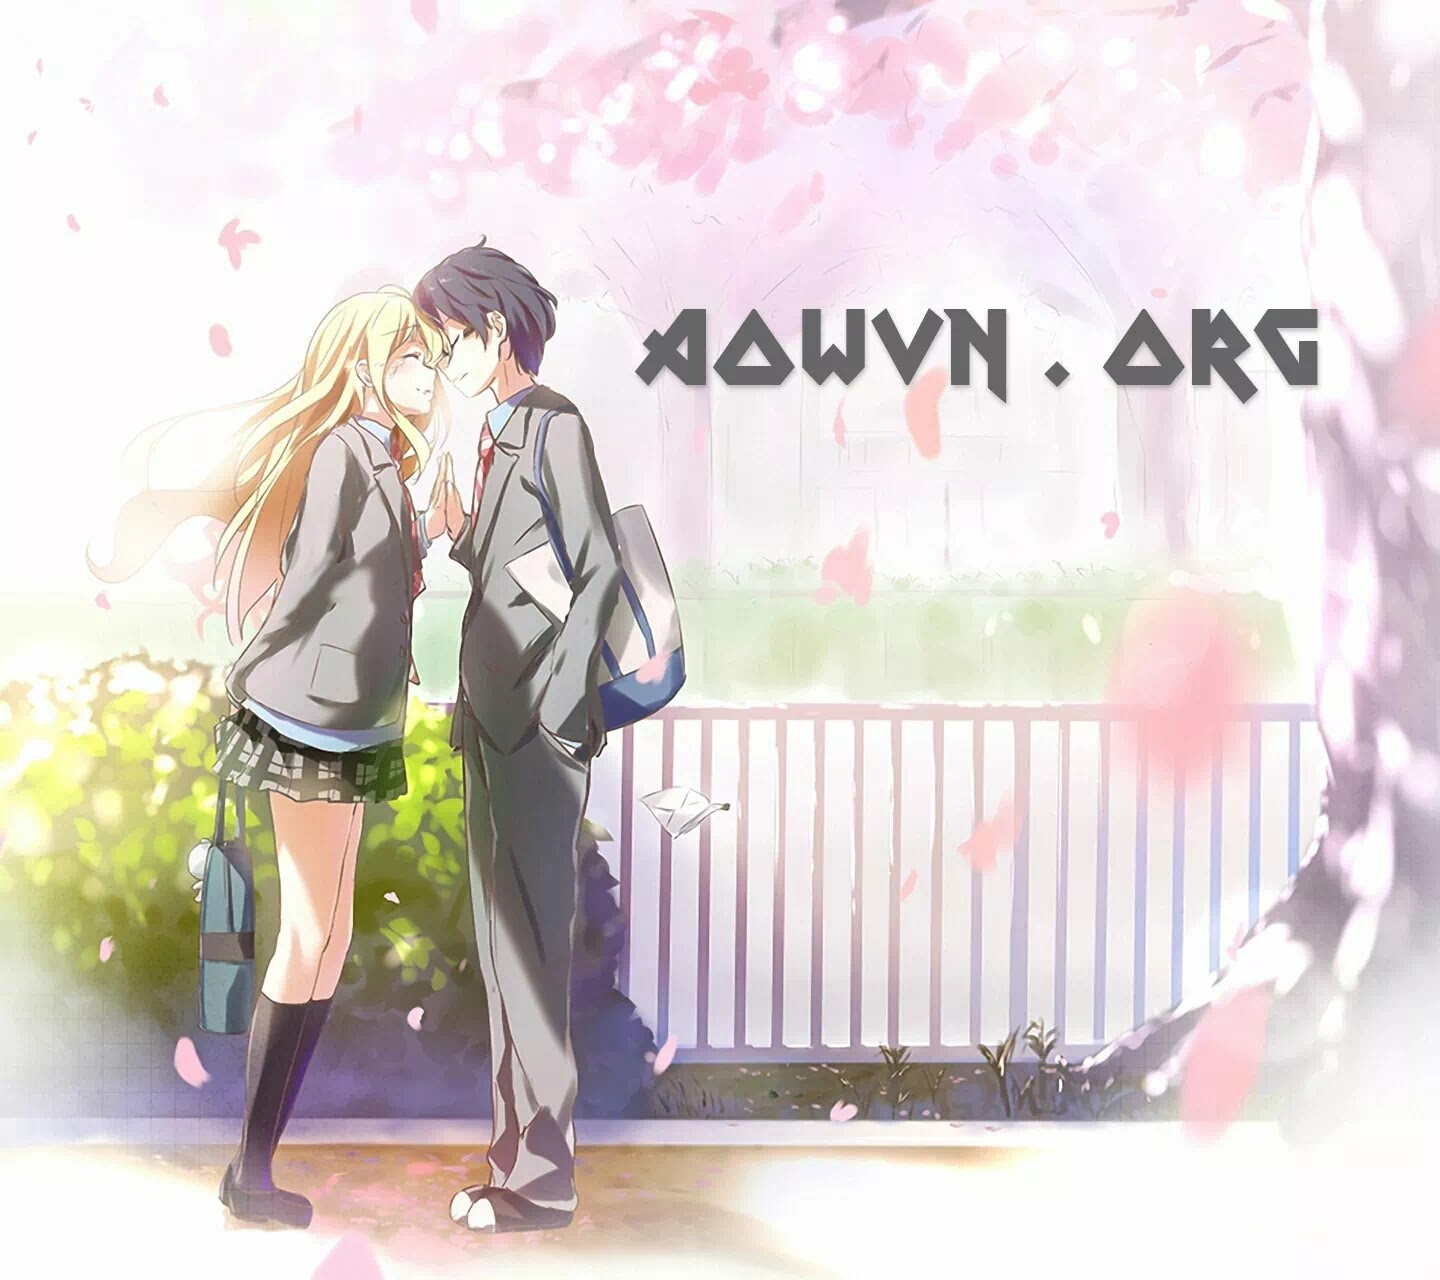 AowVN%2B%25281%2529 - [ Nhạc Nhật ] Shigatsu wa Kimi no Uso - Original Soundtrack | FLAC 16bit 44100 Hz- Anime Songs